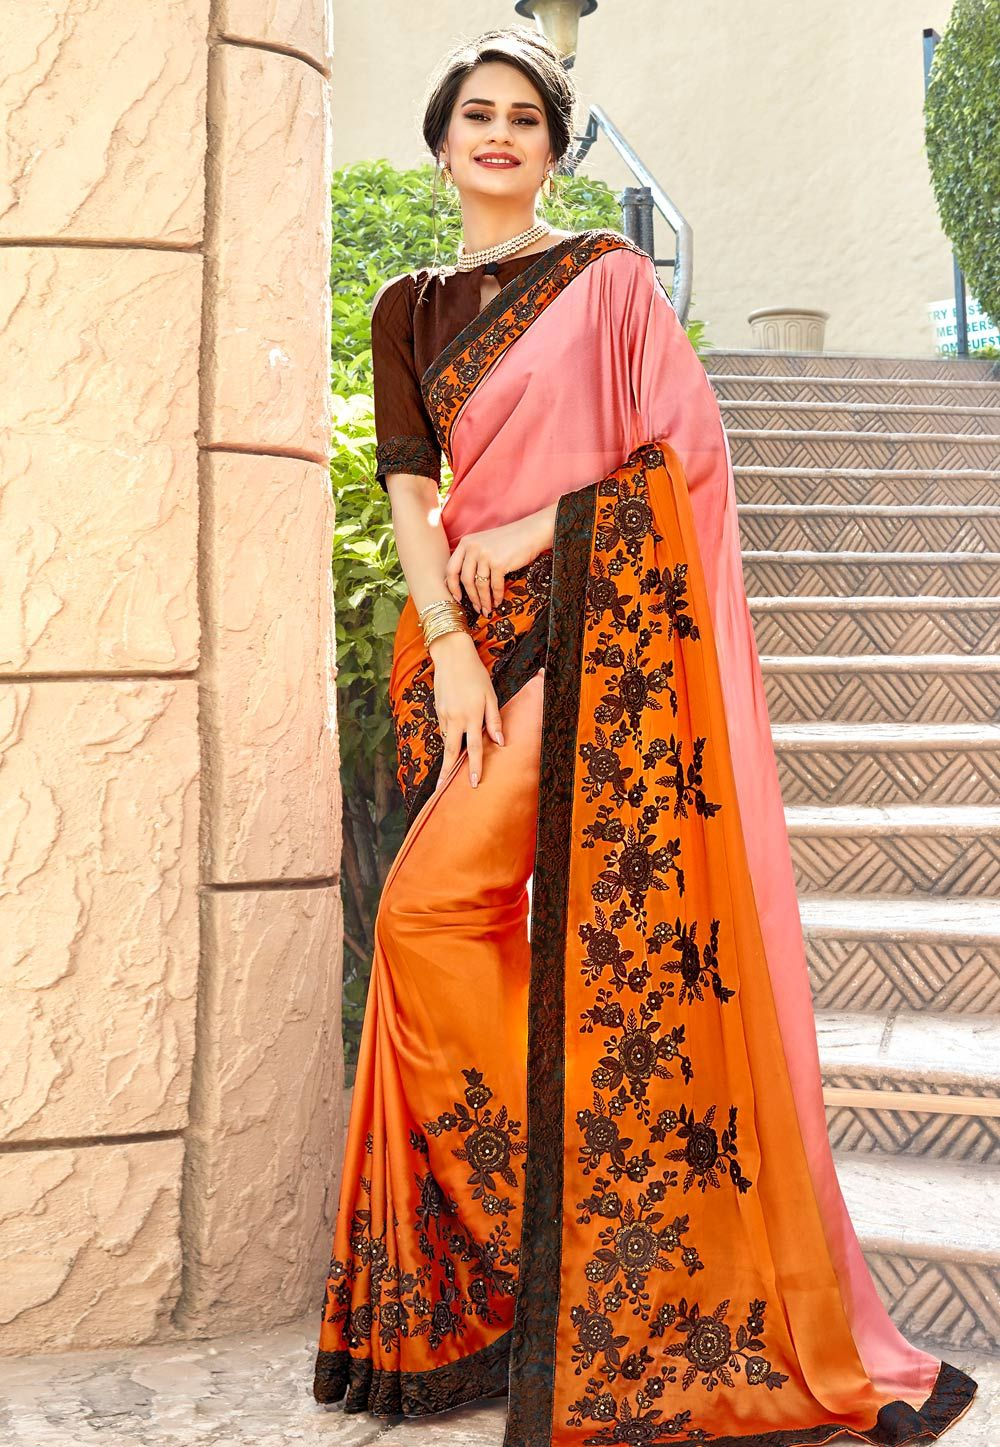 d4e027f6e5 Buy Orange Satin Embroidered Saree With Blouse 156276 with blouse online at  lowest price from vast collection of sarees at Indianclothstore.com.